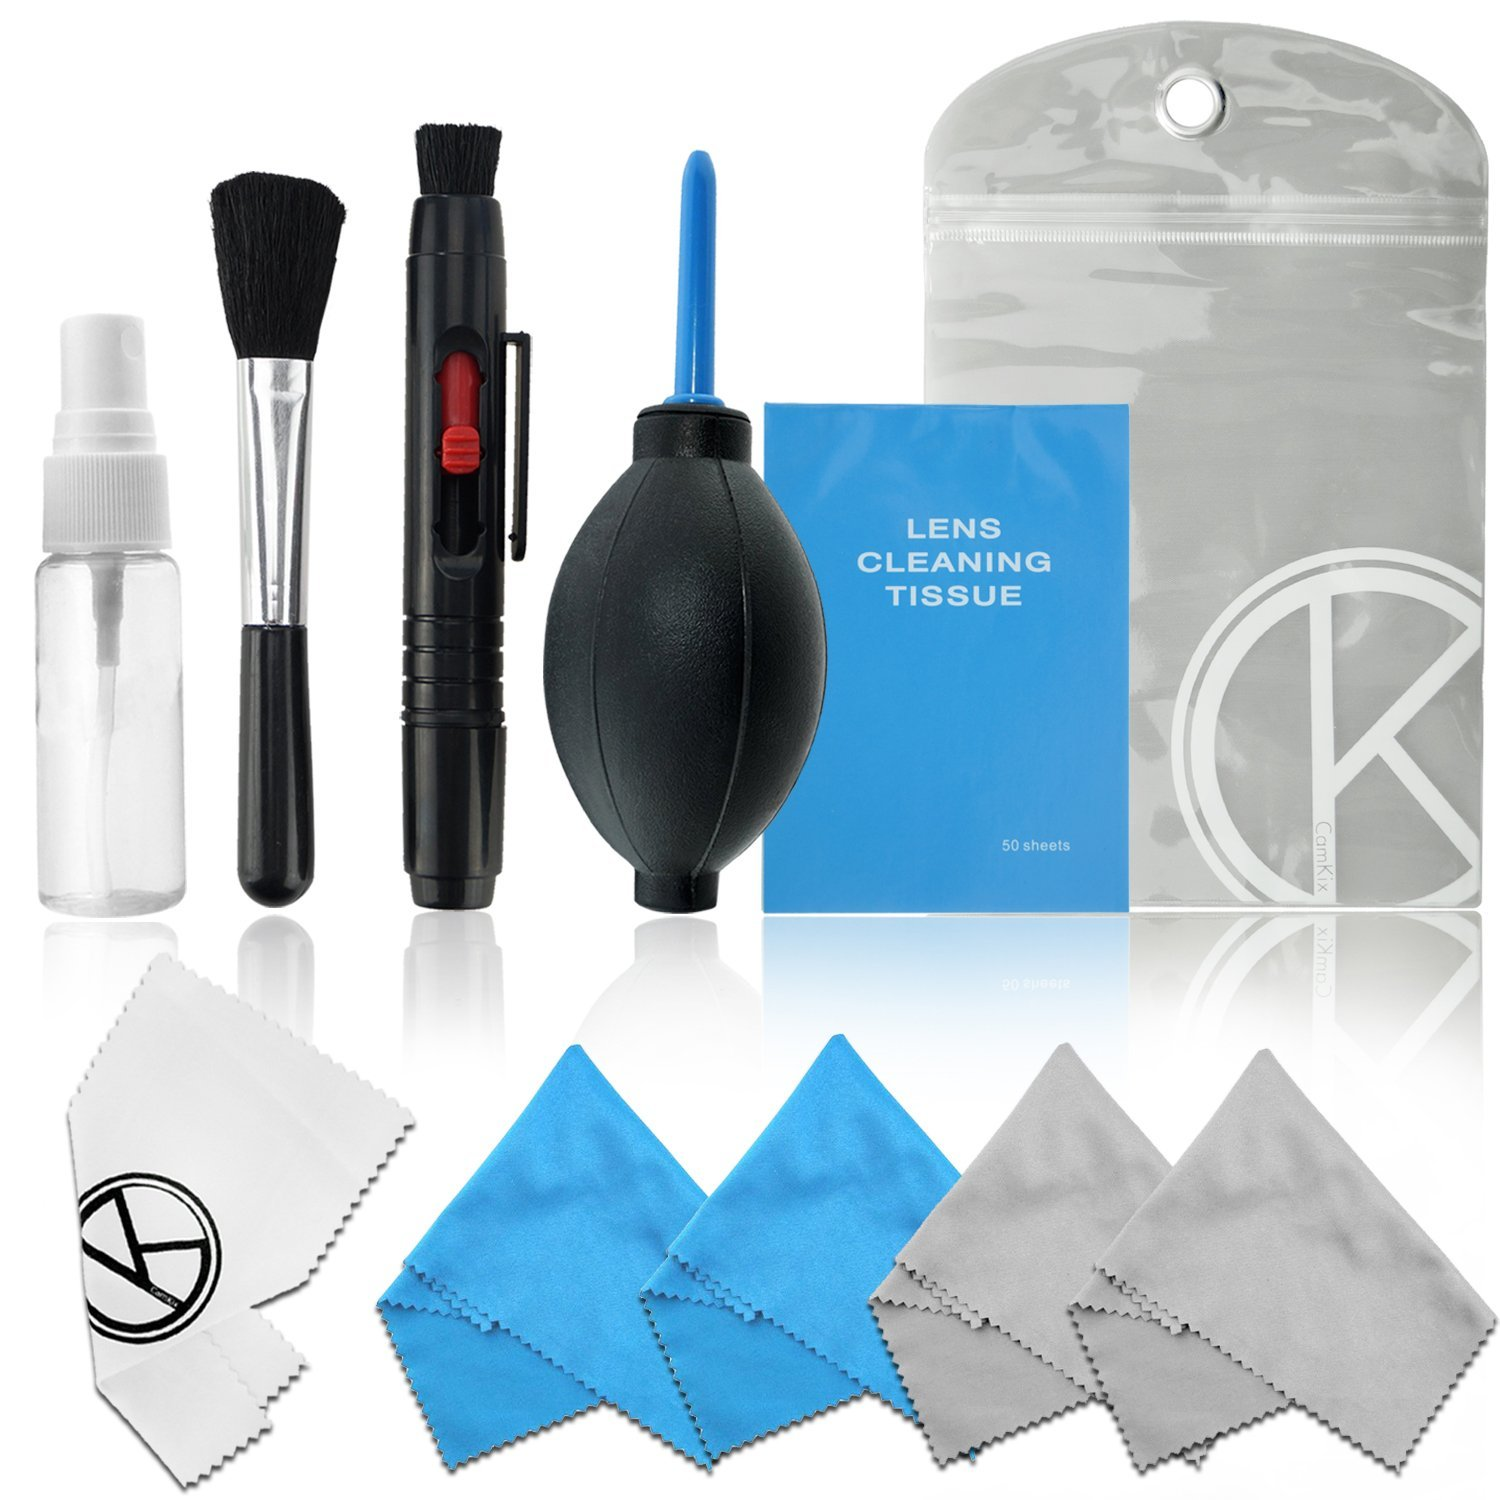 DLSR camera cleaning kit